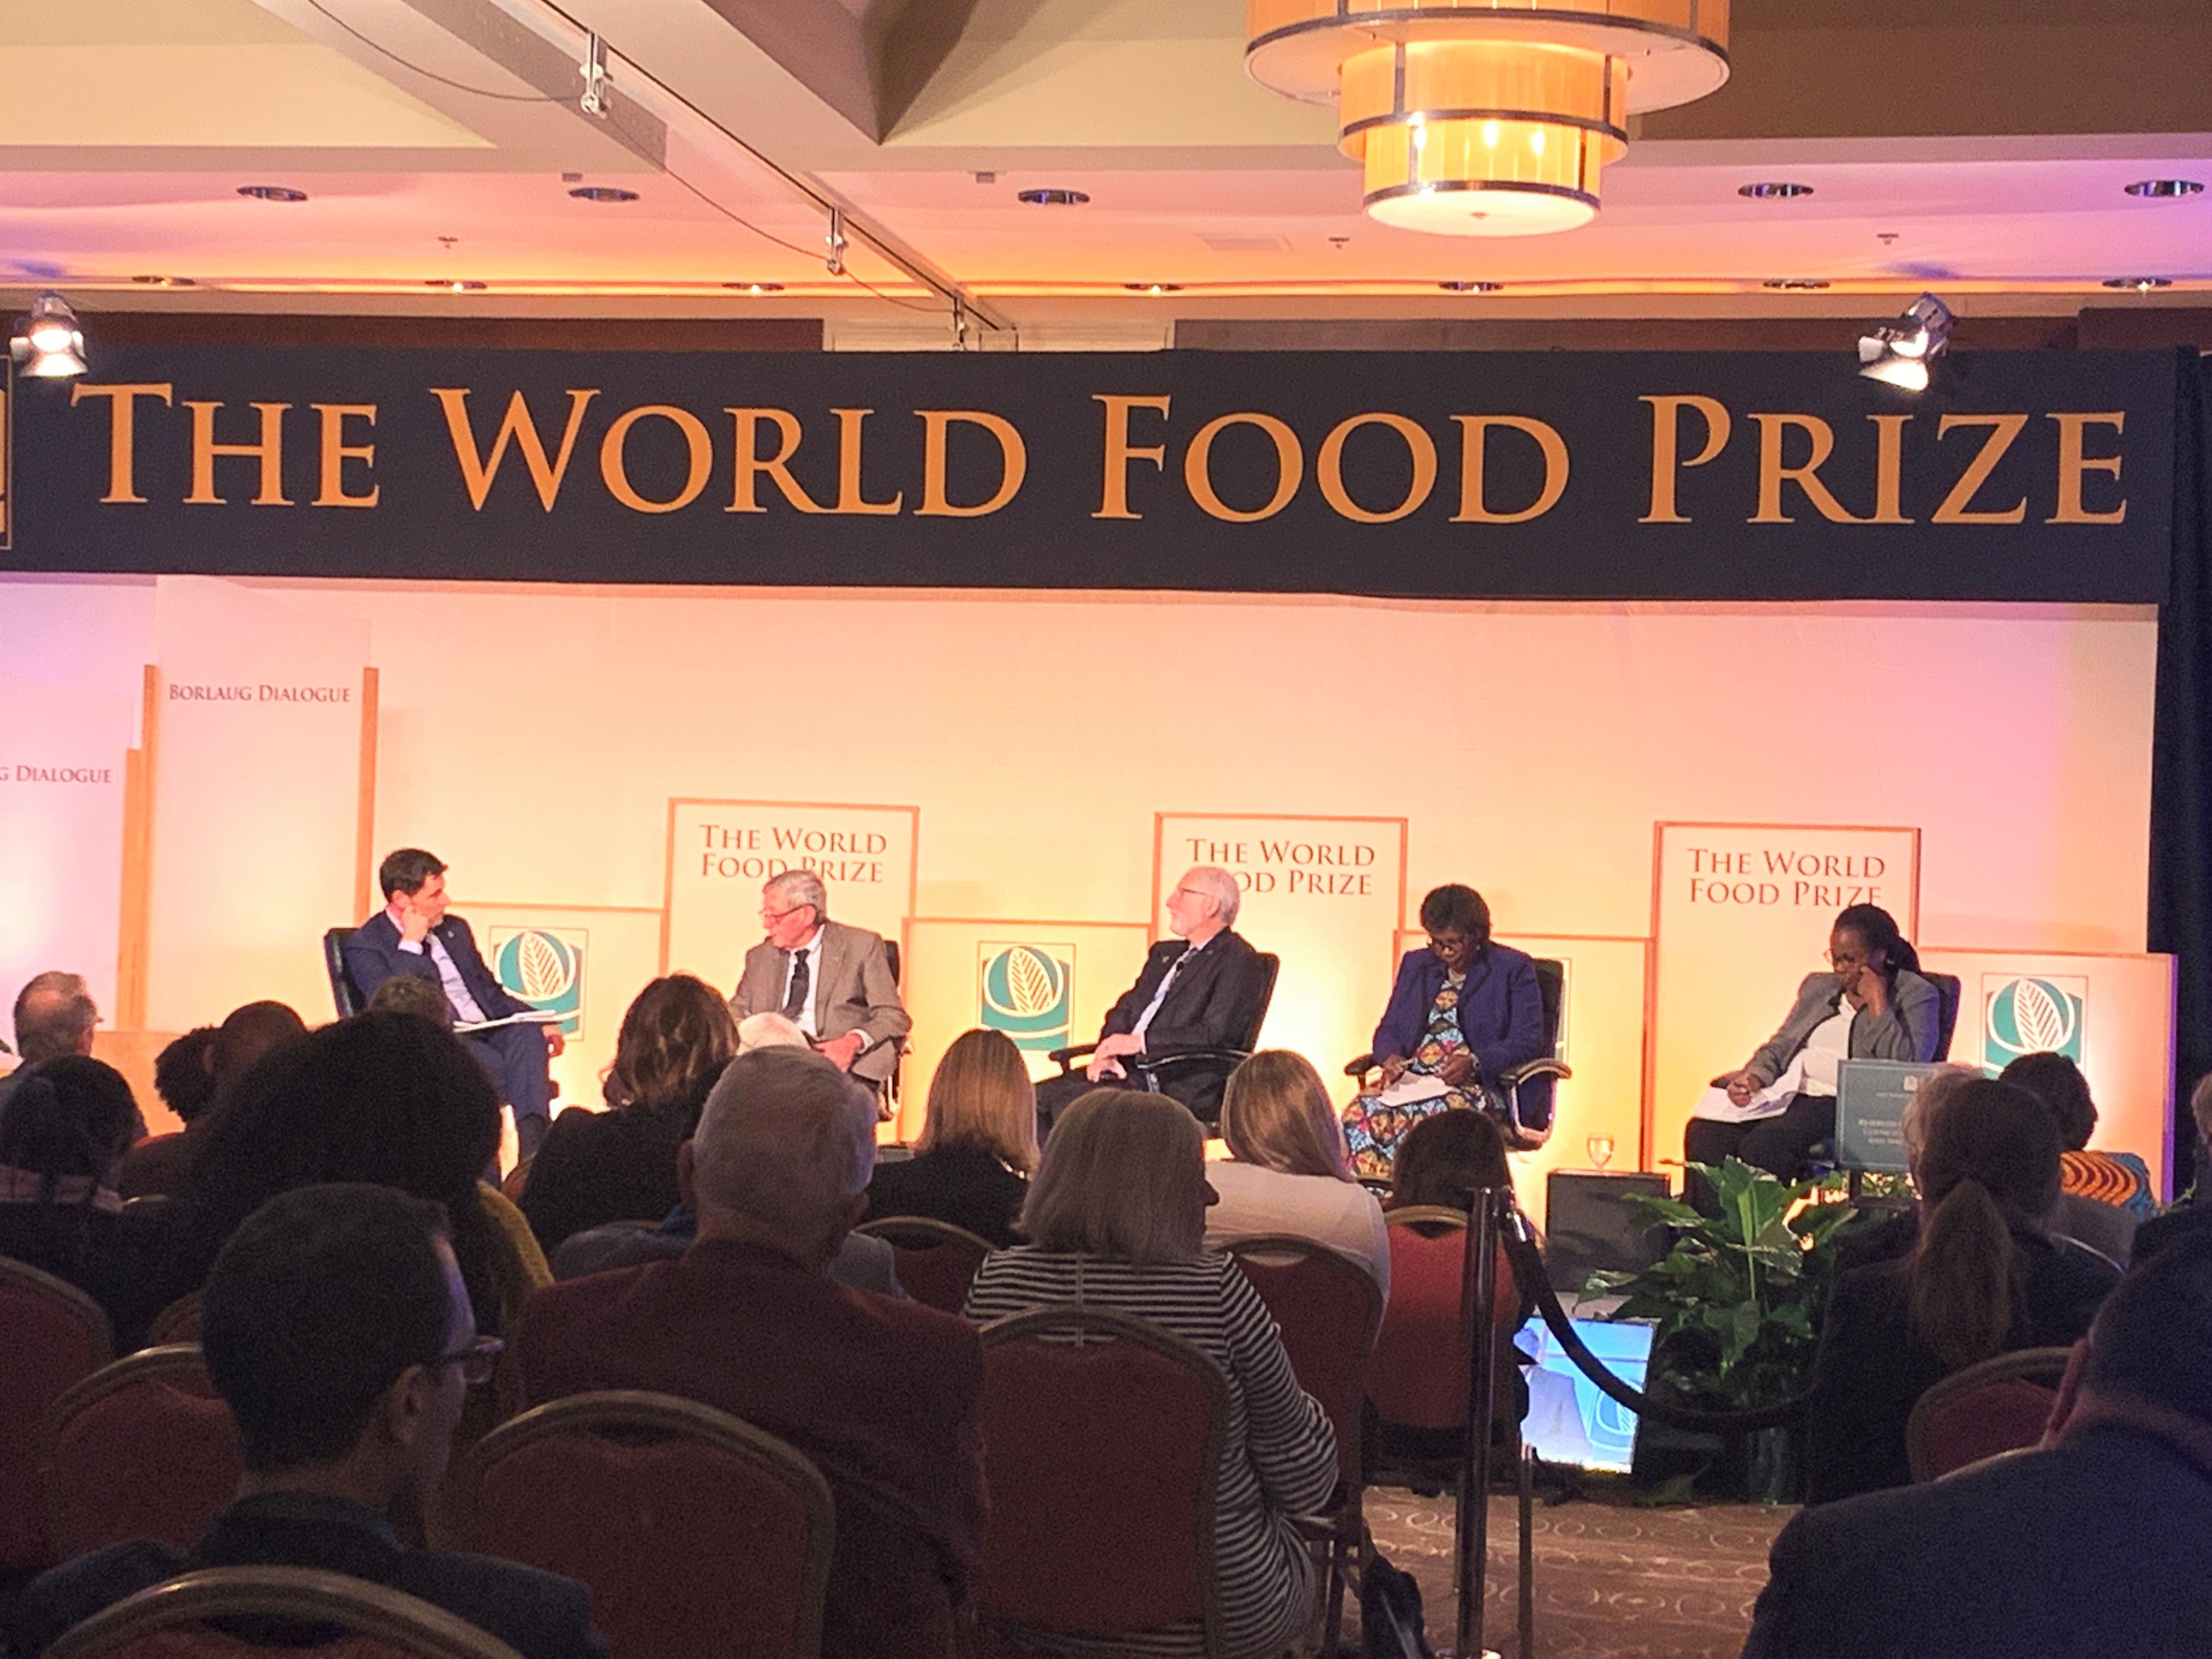 The Executive Director of CGIAR, Elwyn Grainger-Jones (left), 2019 World Food Prize Laureate, Simon Groot (second from left) and other speakers present CGIAR's Crops to End Hunger initiative. (Photo: Mary Donovan/CIMMYT)